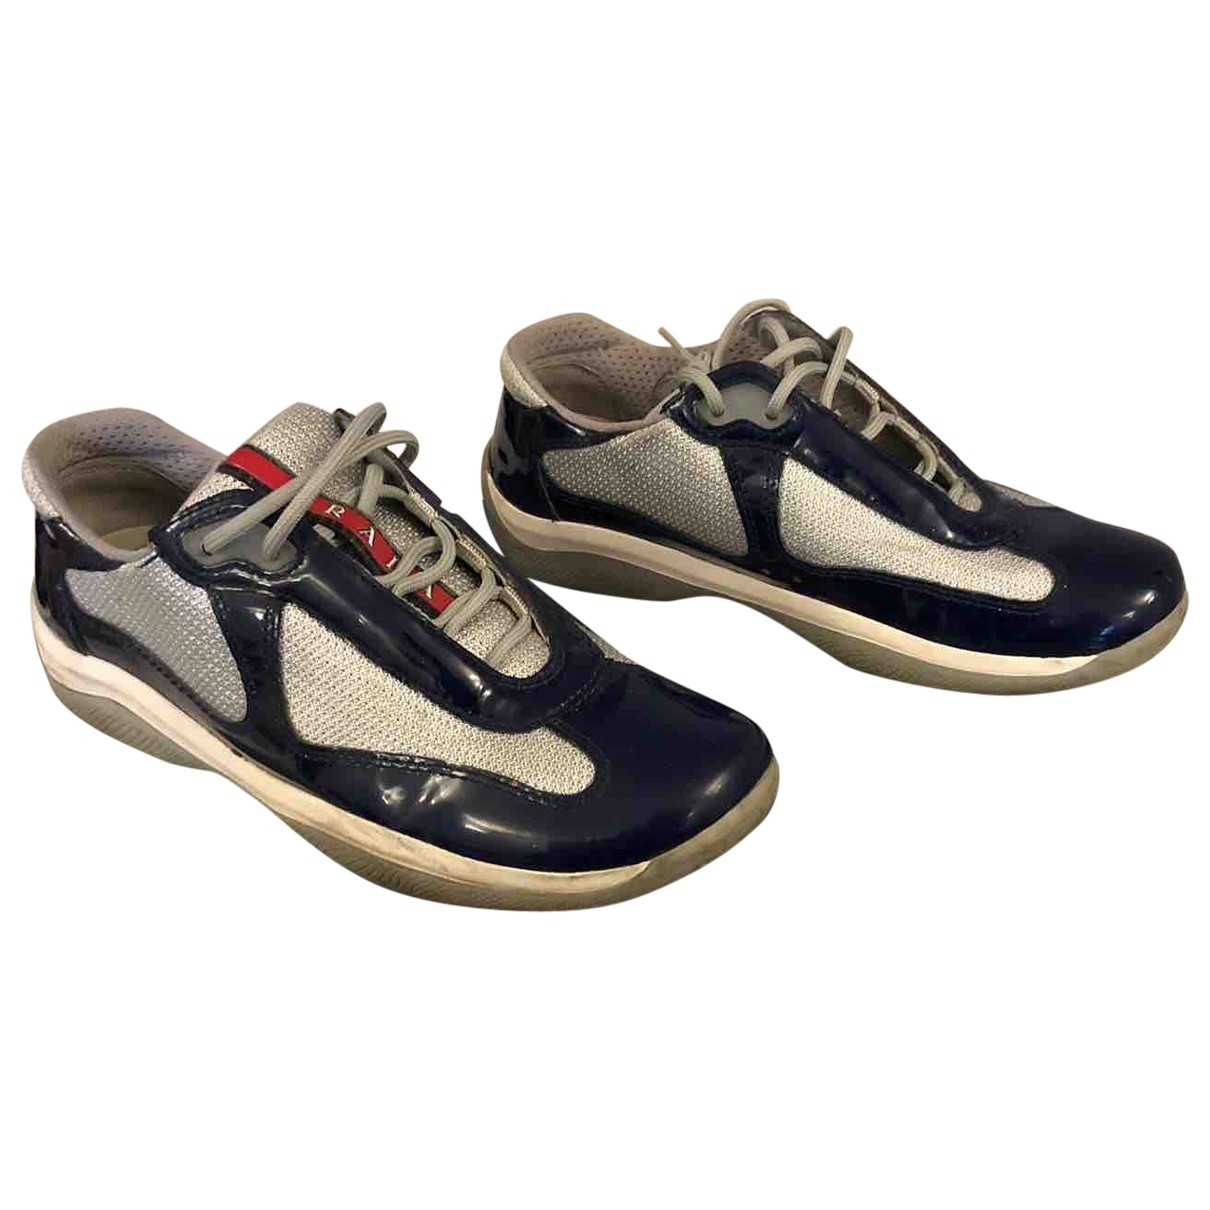 Prada \N Blue Patent leather Trainers for Women 37.5 EU